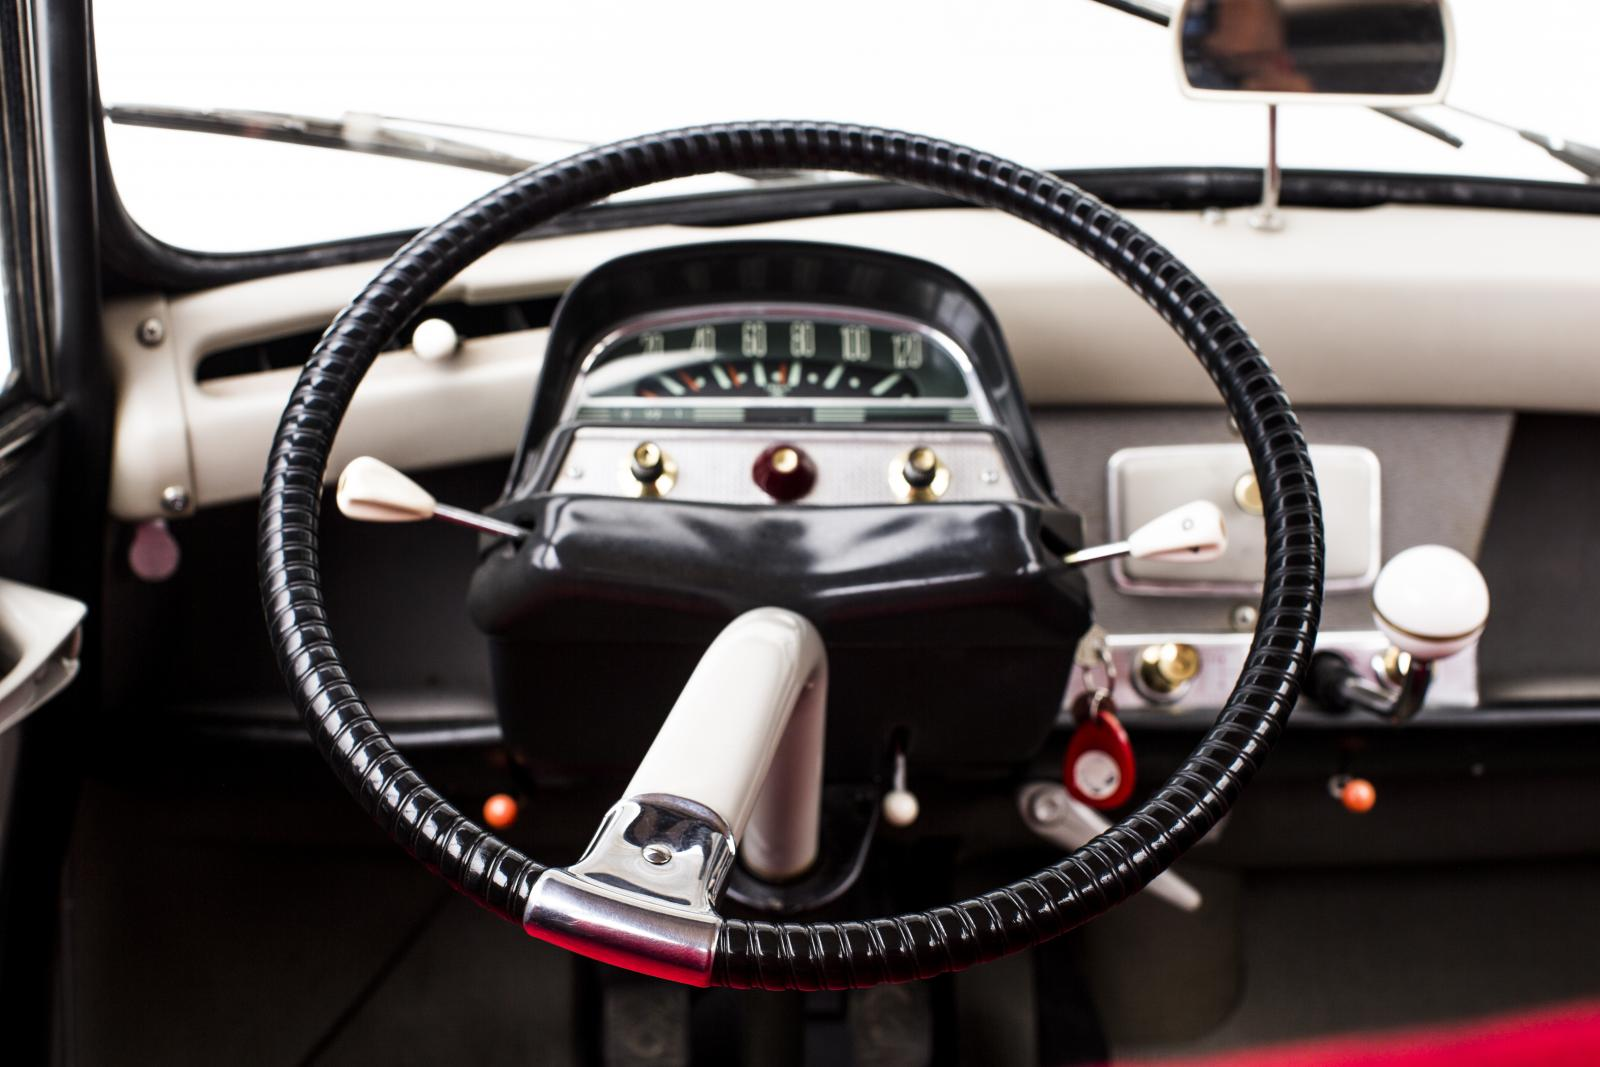 AMI 6 steering wheel